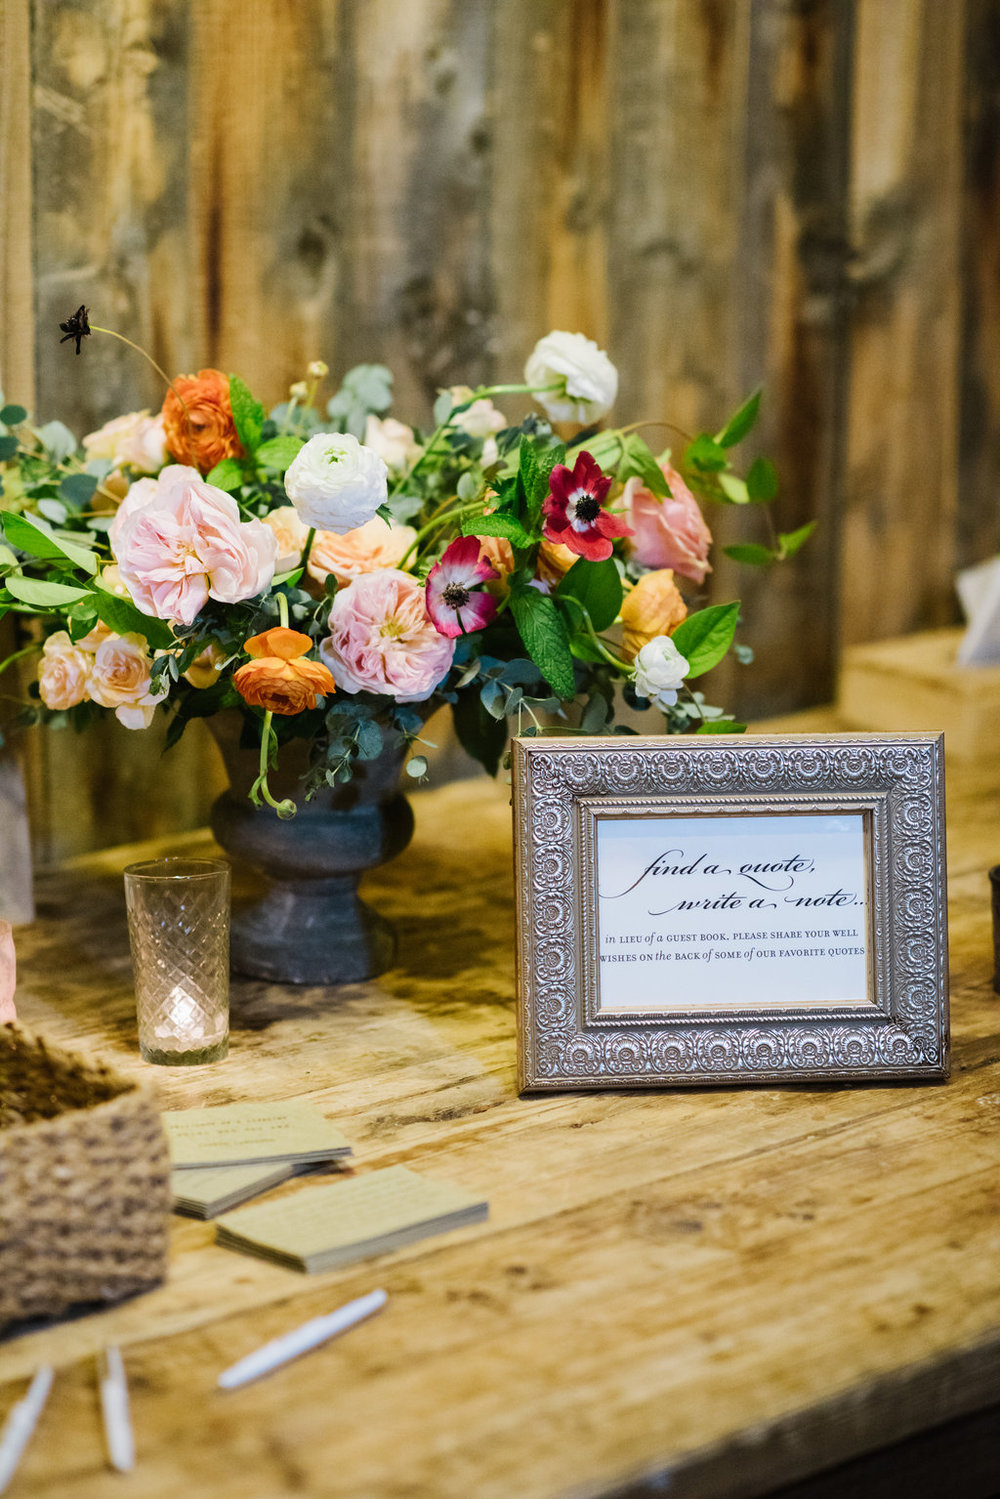 Spring Wedding at Sundance | Sundance Wedding | Spring Wedding | Michelle Leo Events | Utah Event Planner and Designer | Heather Nan Photography